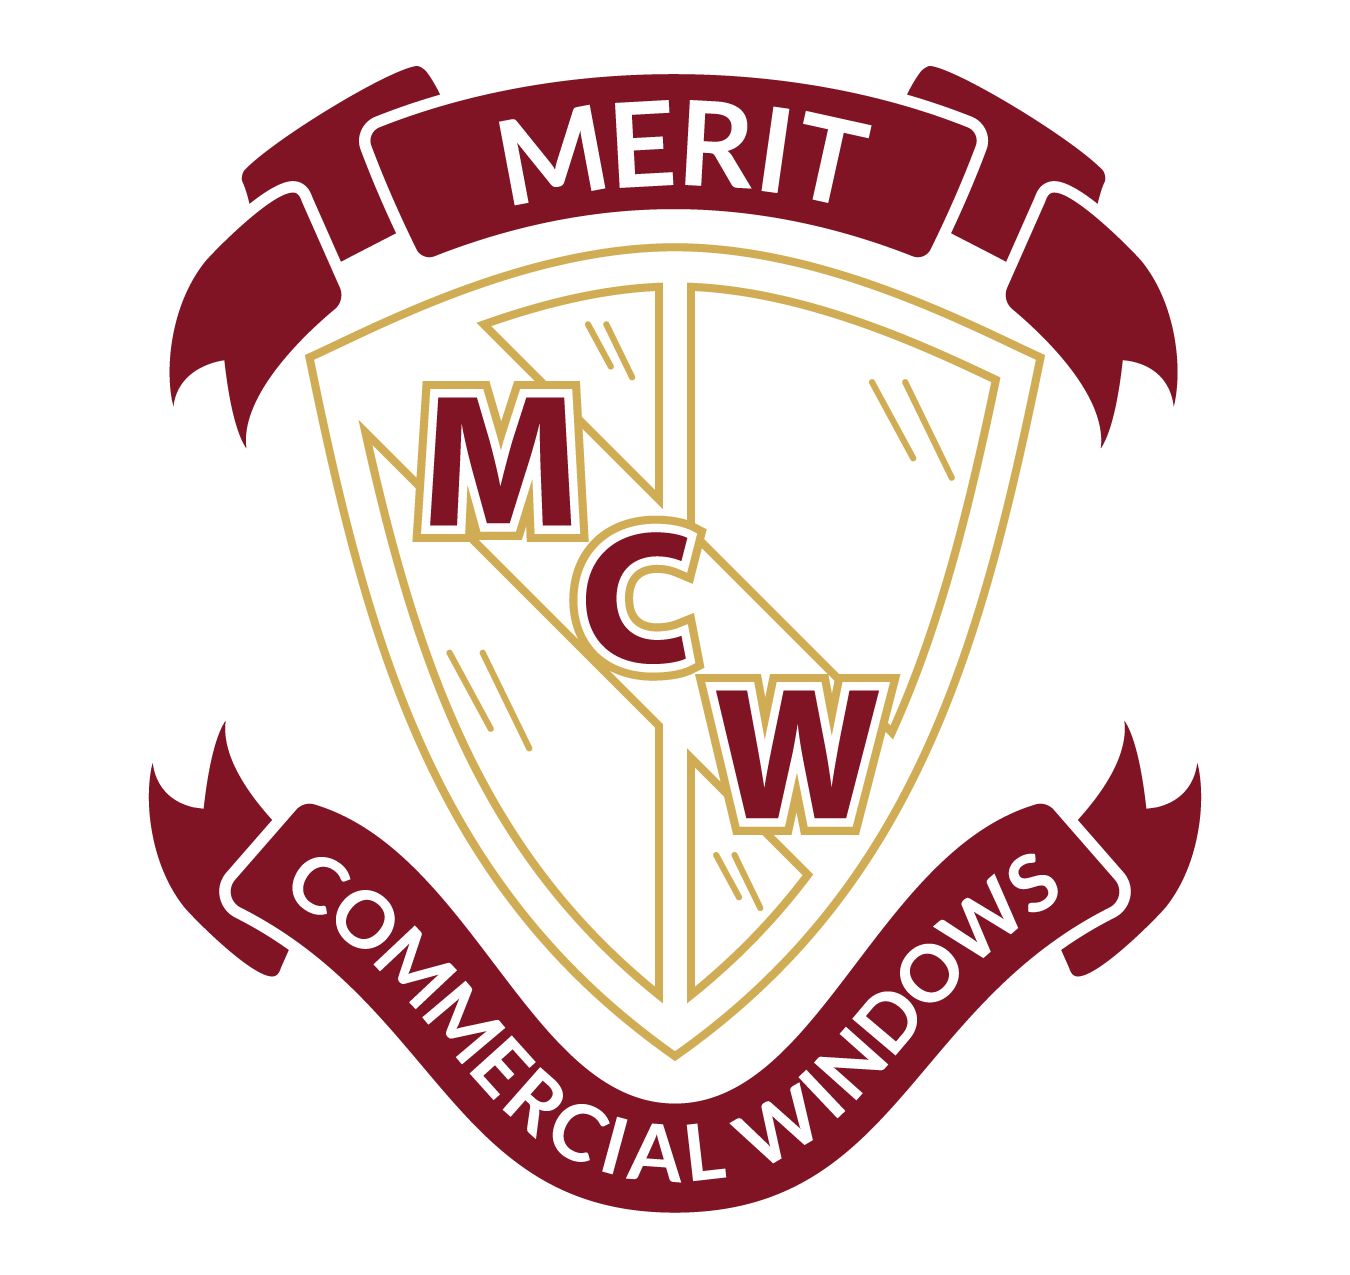 Merit Commercial Windows